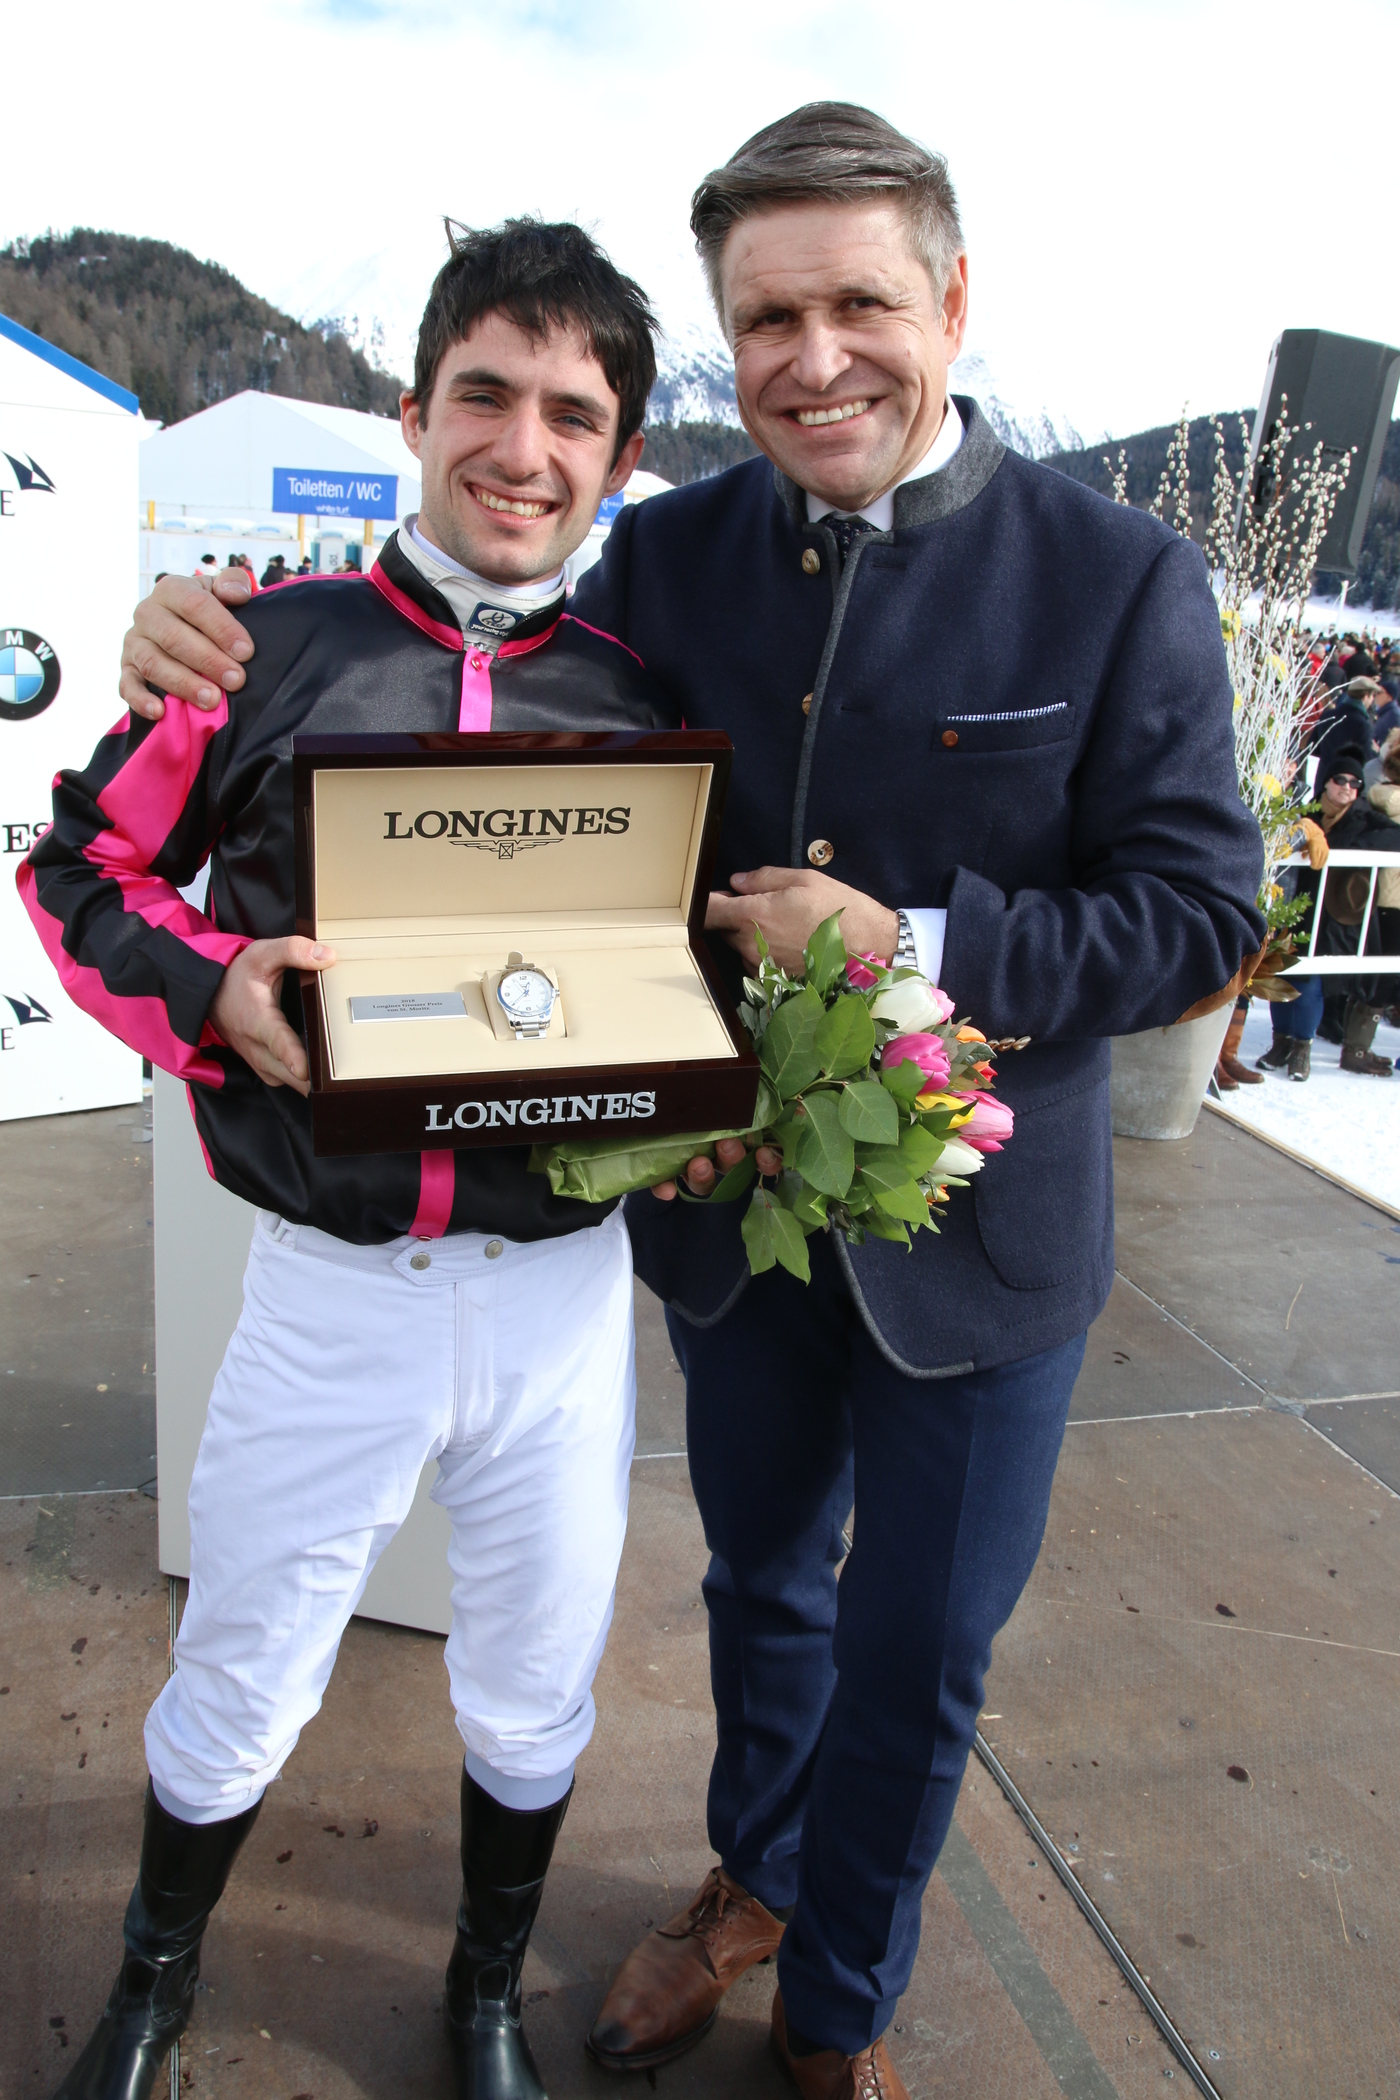 Longines Flat Racing Event: Maxim Pecheur and Nimrod won the Longines 79. Grosser Preis von St. Moritz 4